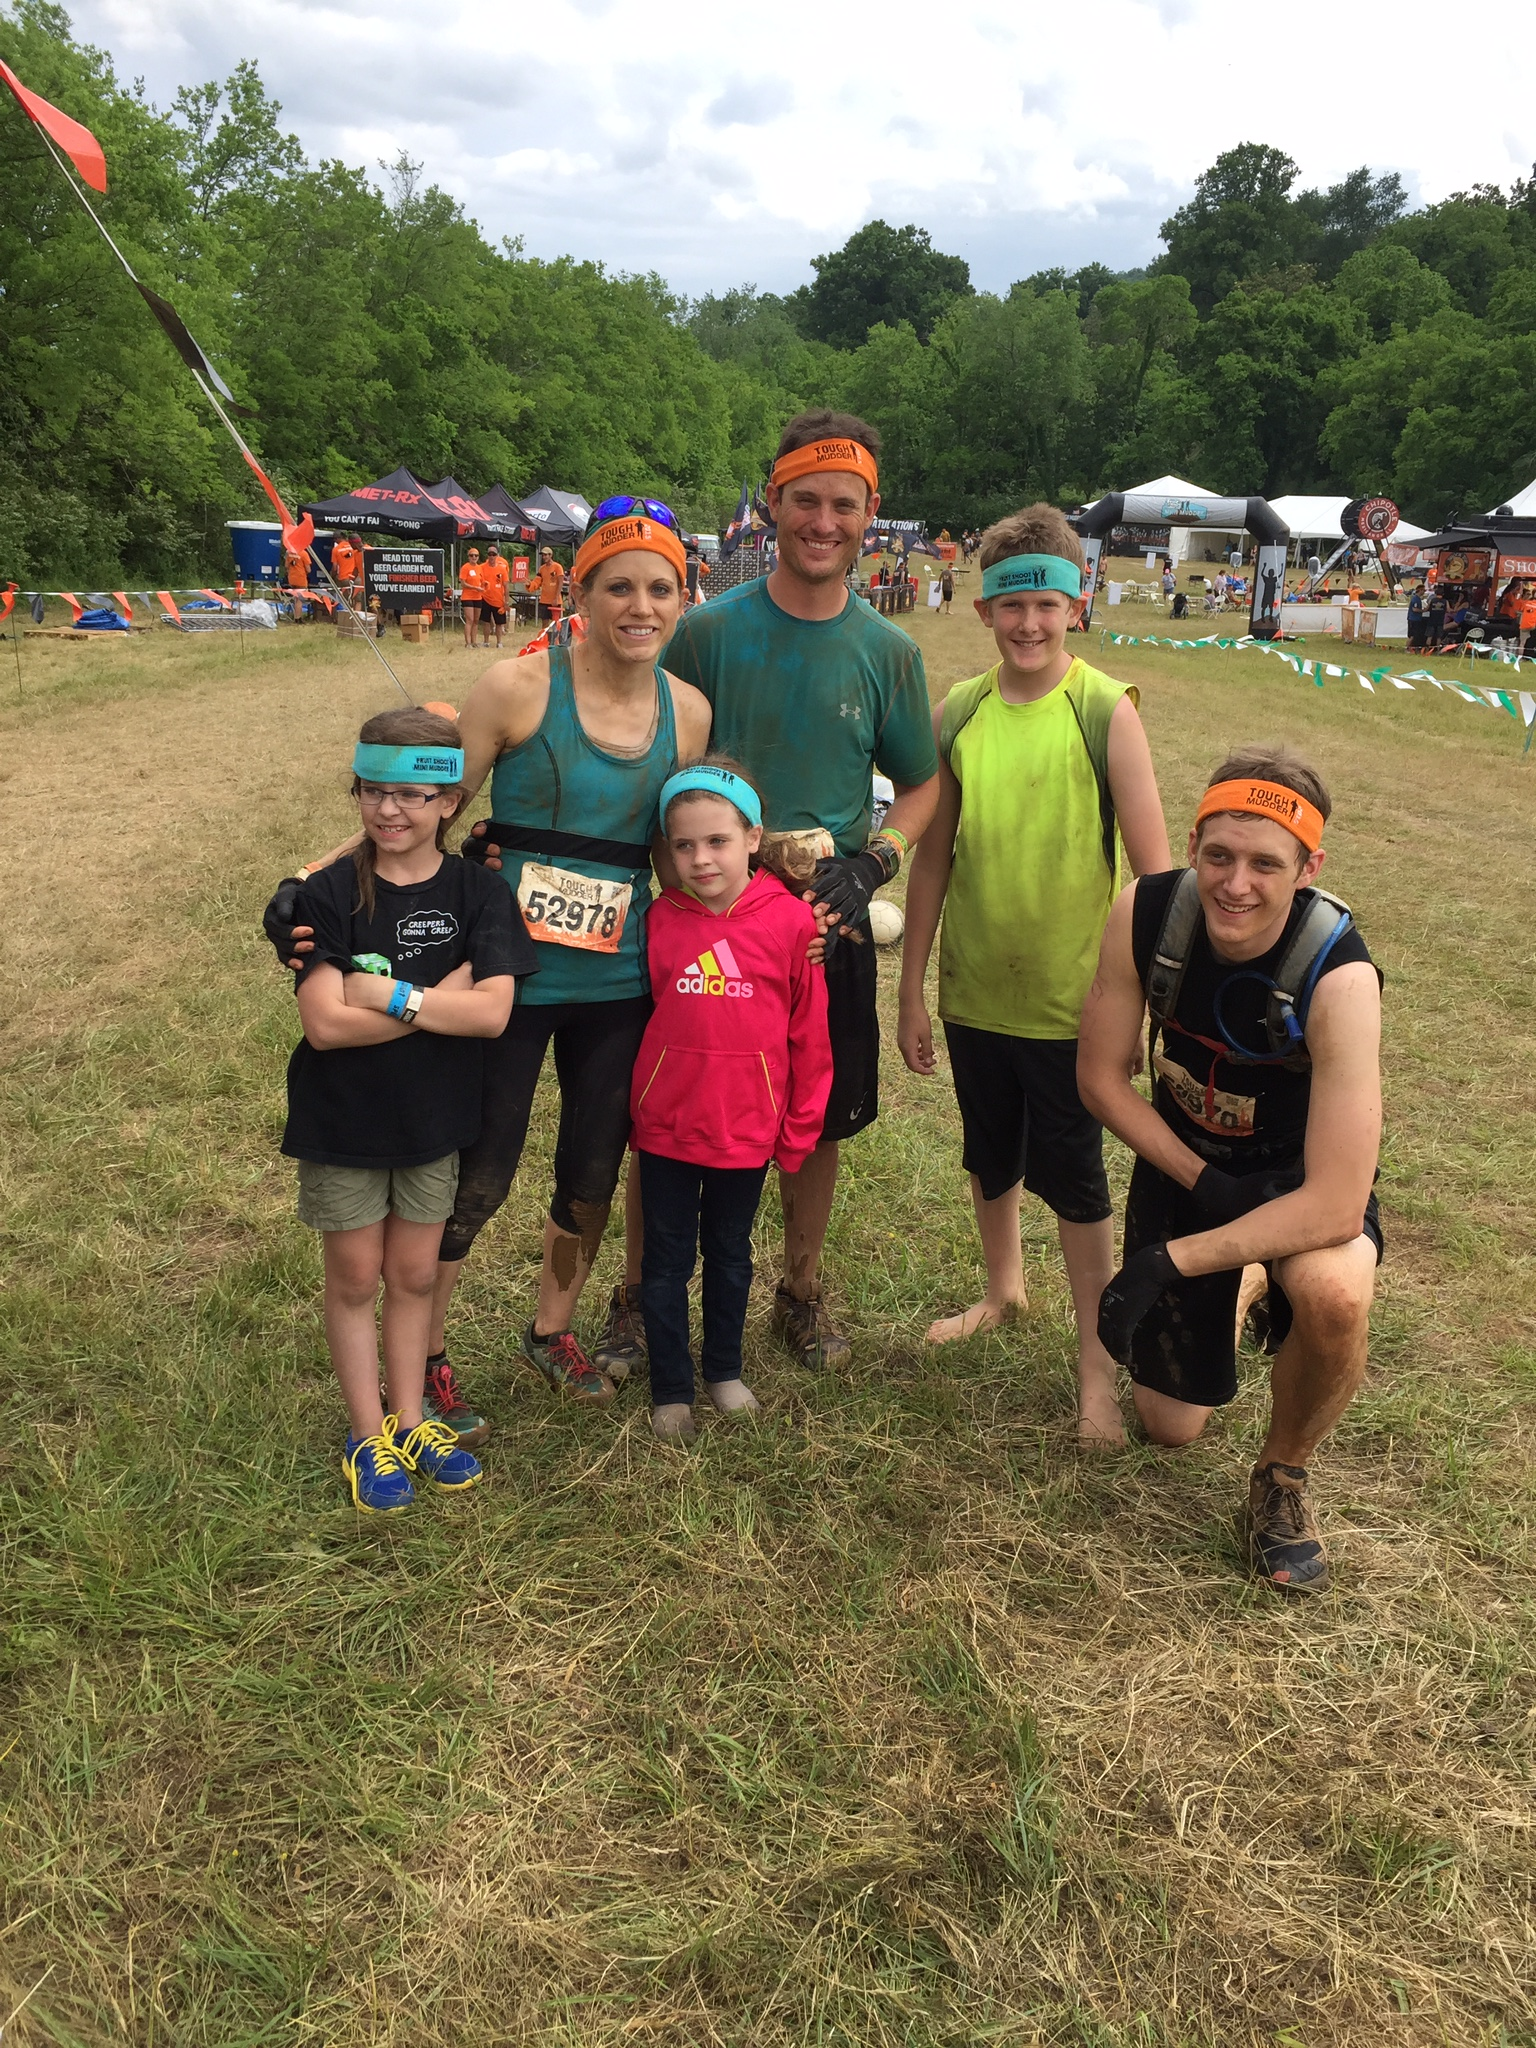 My First Tough Mudder Race